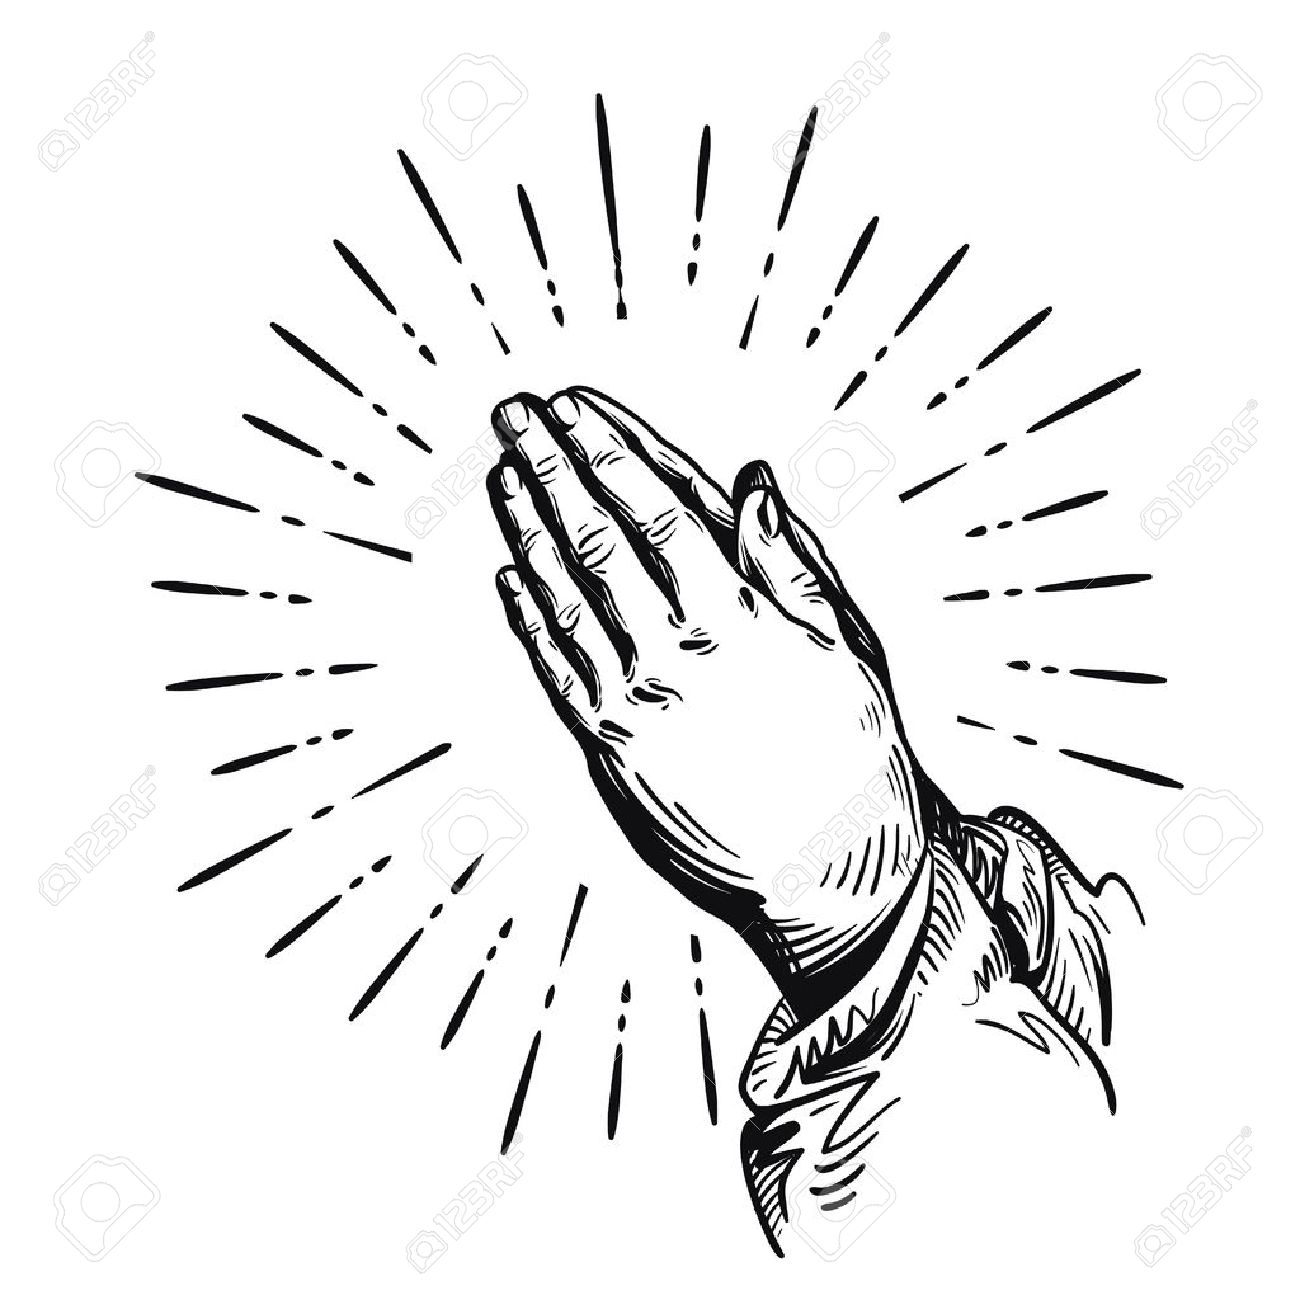 1300x1300 Prayer. Praying Hands. Vector Illustration Isolated On White